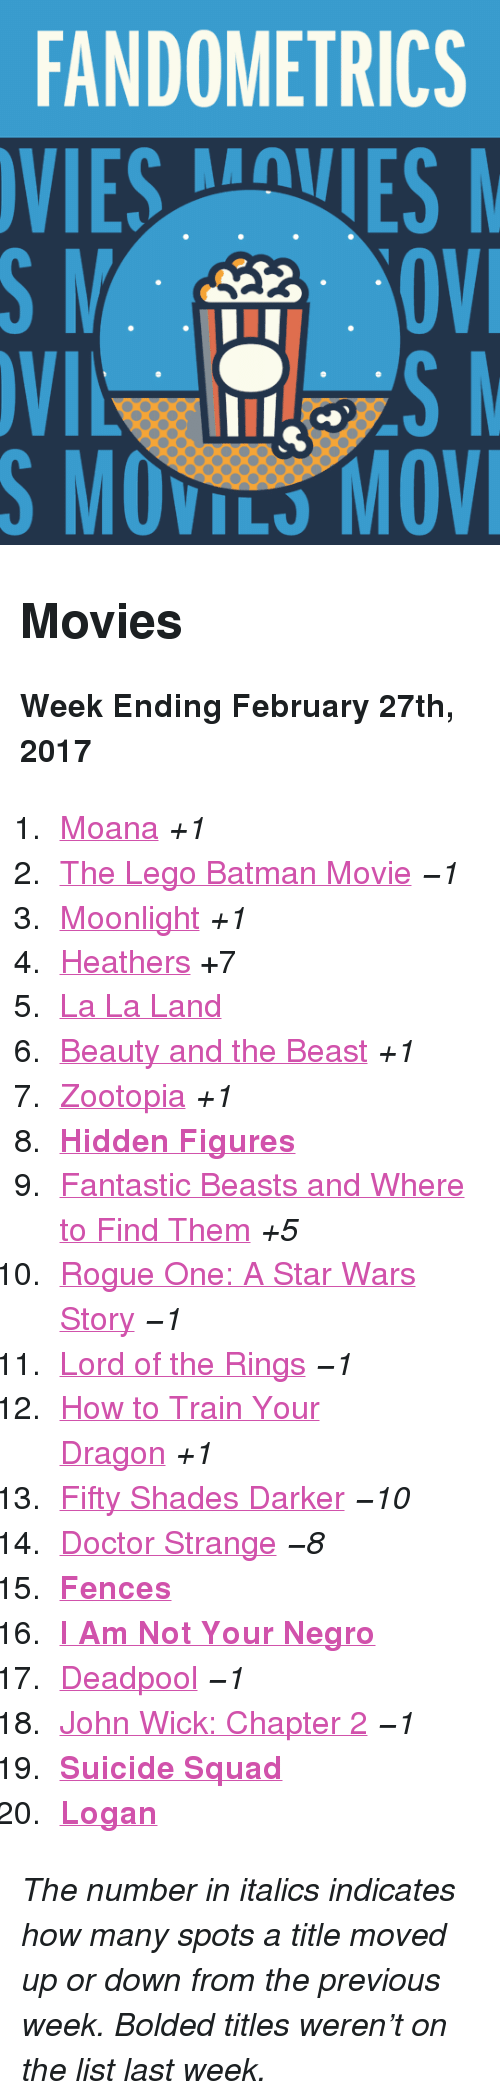 "Batman, Doctor, and John Wick: FANDOMETRICS  VIESVES  S MOVILS MOV <h2>Movies</h2><p><b>Week Ending February 27th, 2017</b></p><ol><li><a href=""http://www.tumblr.com/search/moana"">Moana</a> <i>+1</i></li>  <li><a href=""http://www.tumblr.com/search/lego%20batman"">The Lego Batman Movie</a> <i>−1</i></li>  <li><a href=""http://www.tumblr.com/search/moonlight"">Moonlight</a> <i>+1</i></li>  <li><a href=""http://www.tumblr.com/search/heathers"">Heathers</a> +7</li>  <li><a href=""http://www.tumblr.com/search/la%20la%20land"">La La Land</a> </li>  <li><a href=""http://www.tumblr.com/search/beauty%20and%20the%20beast"">Beauty and the Beast</a> <i>+1</i></li>  <li><a href=""http://www.tumblr.com/search/zootopia"">Zootopia</a> <i>+1</i></li>  <li><b><a href=""http://www.tumblr.com/search/hidden%20figures"">Hidden Figures</a> </b></li>  <li><a href=""http://www.tumblr.com/search/fantastic%20beasts%20and%20where%20to%20find%20them"">Fantastic Beasts and Where to Find Them</a> <i>+5</i></li>  <li><a href=""http://www.tumblr.com/search/rogue%20one"">Rogue One: A Star Wars Story</a> <i>−1</i></li>  <li><a href=""http://www.tumblr.com/search/lotr"">Lord of the Rings</a> <i>−1</i></li>  <li><a href=""http://www.tumblr.com/search/httyd"">How to Train Your Dragon</a> <i>+1</i></li>  <li><a href=""http://www.tumblr.com/search/fifty%20shades%20darker"">Fifty Shades Darker</a> <i>−10</i></li>  <li><a href=""http://www.tumblr.com/search/doctor%20strange"">Doctor Strange</a> <i>−8</i></li>  <li><b><a href=""http://www.tumblr.com/search/fences"">Fences</a> </b></li>  <li><a href=""http://www.tumblr.com/search/i%20am%20not%20your%20negro""><b>I Am Not Your Negro</b></a></li>  <li><a href=""http://www.tumblr.com/search/deadpool"">Deadpool</a> <i>−1</i></li>  <li><a href=""http://www.tumblr.com/search/john%20wick"">John Wick: Chapter 2</a> <i>−1</i></li>  <li><a href=""http://www.tumblr.com/search/suicide%20squad""><b>Suicide Squad</b></a></li>  <li><a href=""http://www.tumblr.com/search/logan""><b>Logan</b></a></li></ol><p><i>The number in italics indicates how many spots a title moved up or down from the previous week. Bolded titles weren't on the list last week.</i></p>"